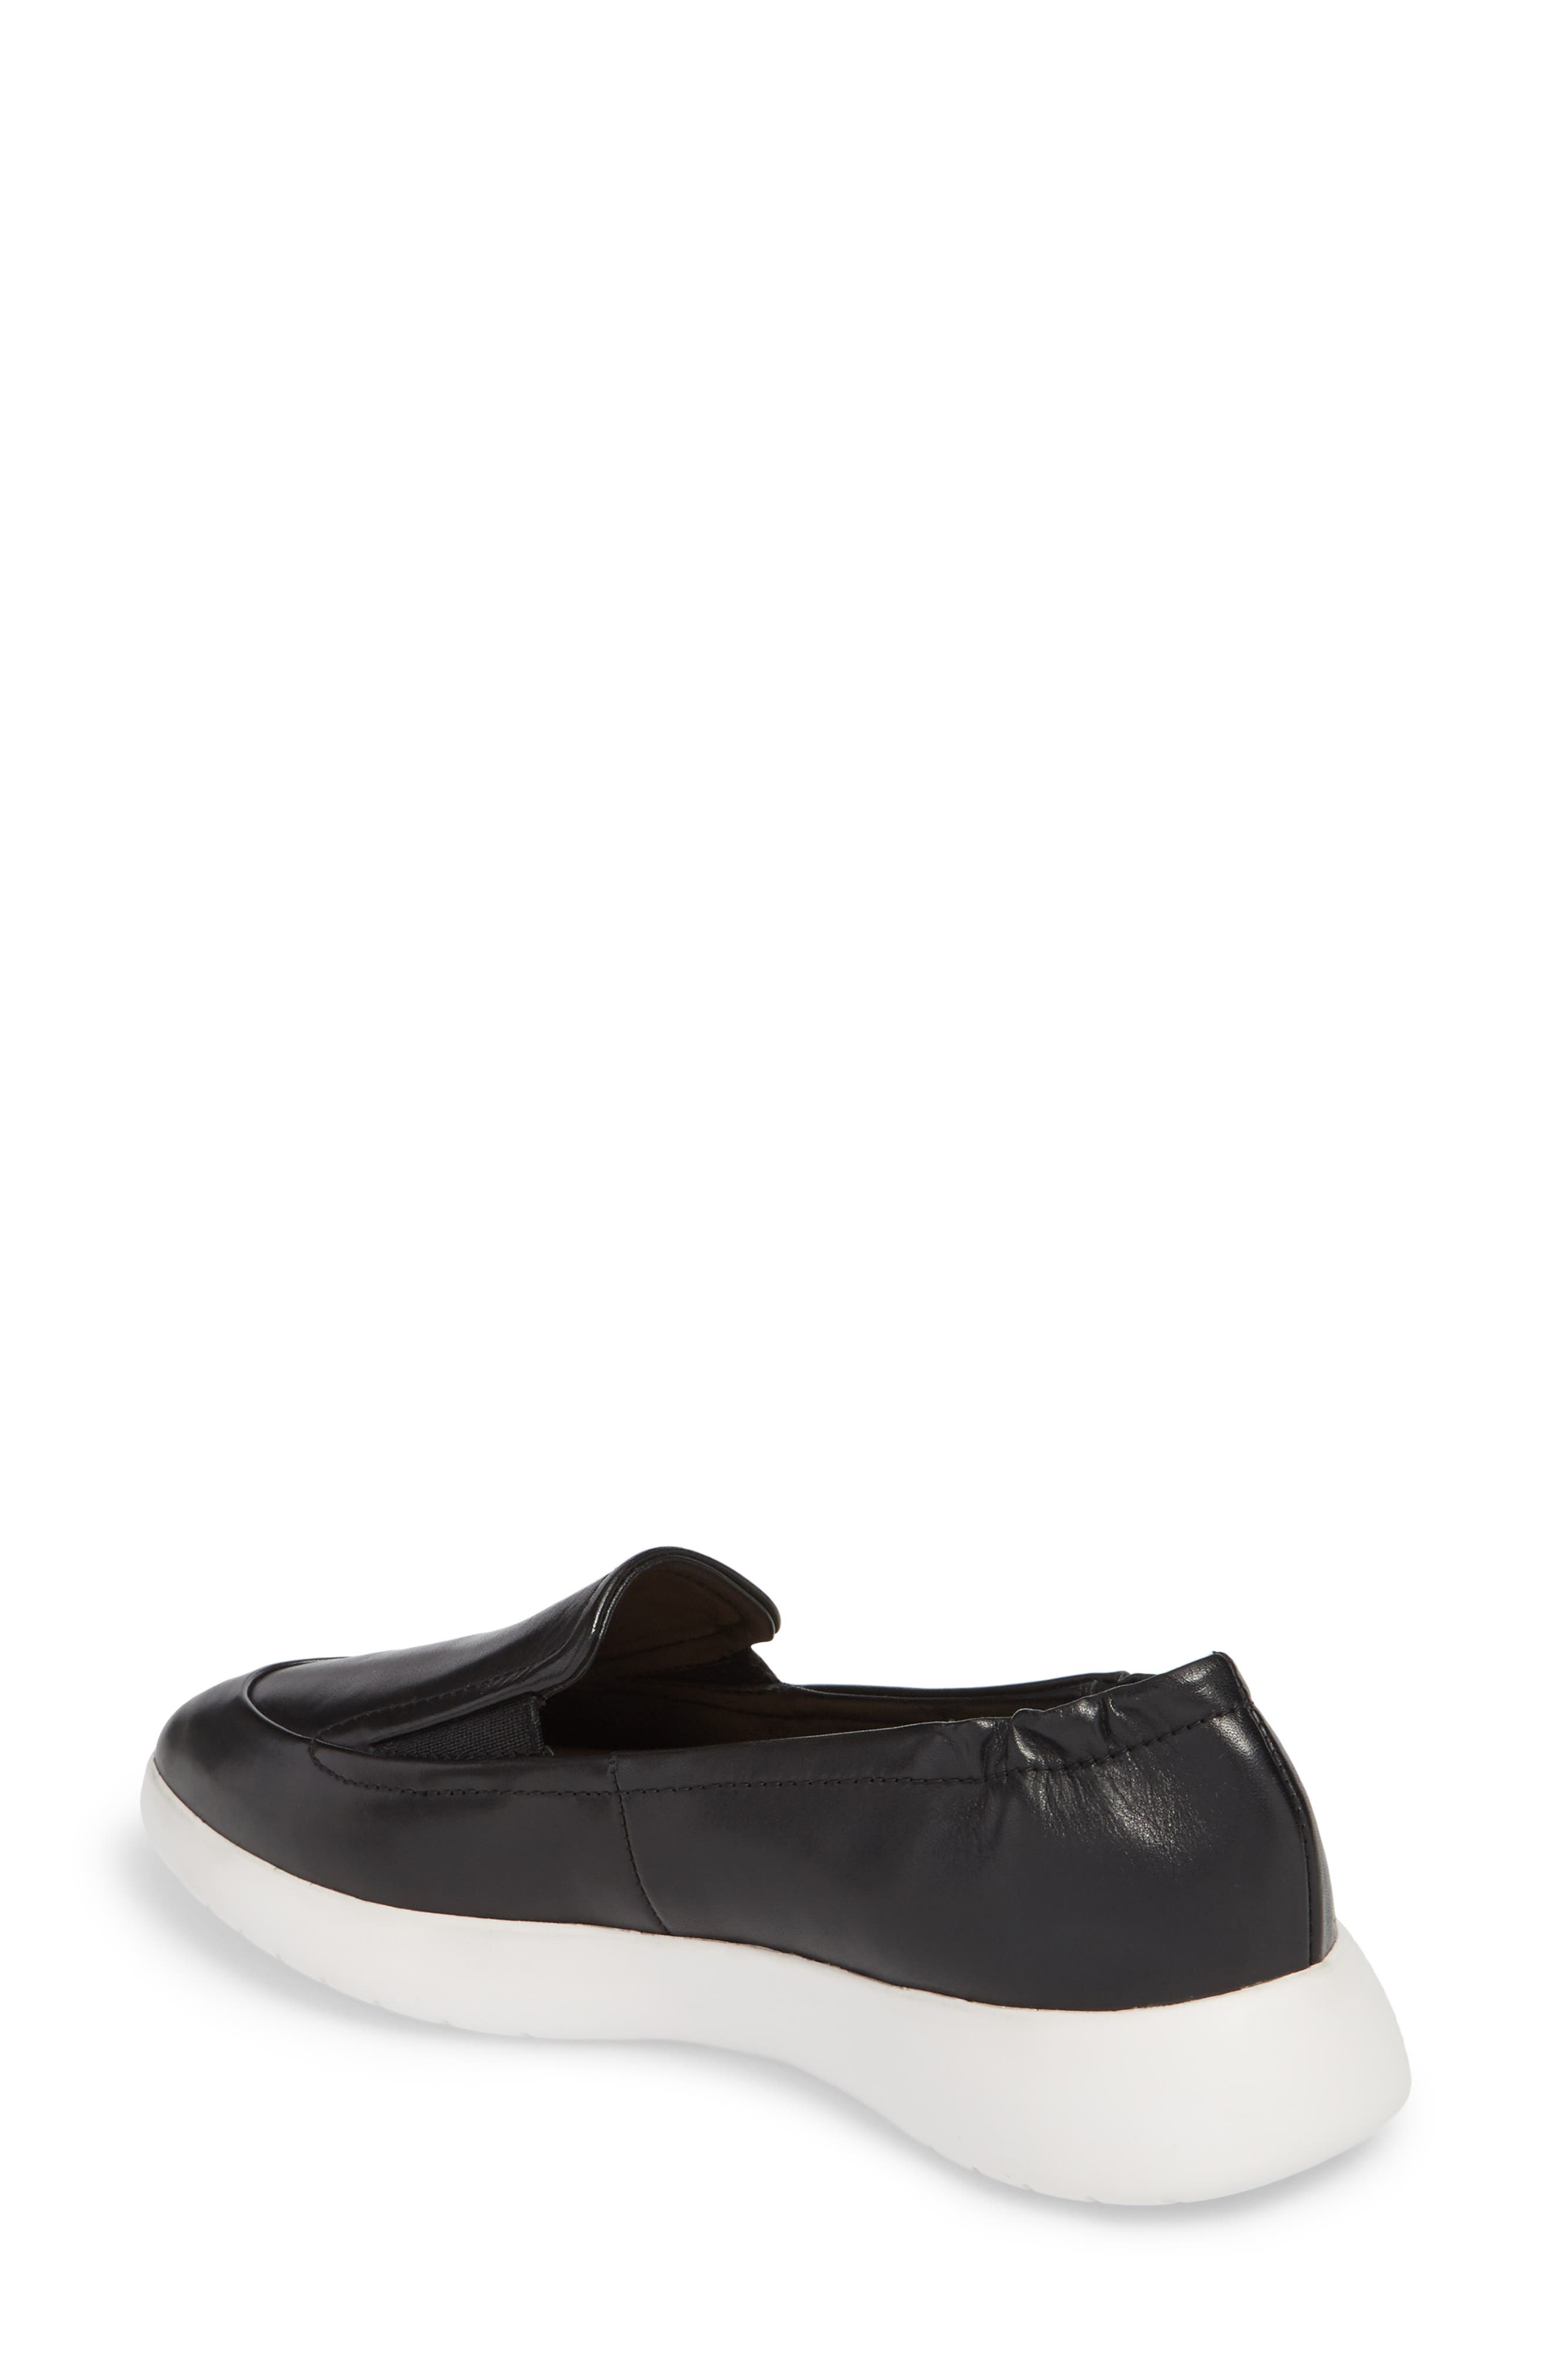 Dana Loafer Sneaker,                             Alternate thumbnail 2, color,                             Black Leather